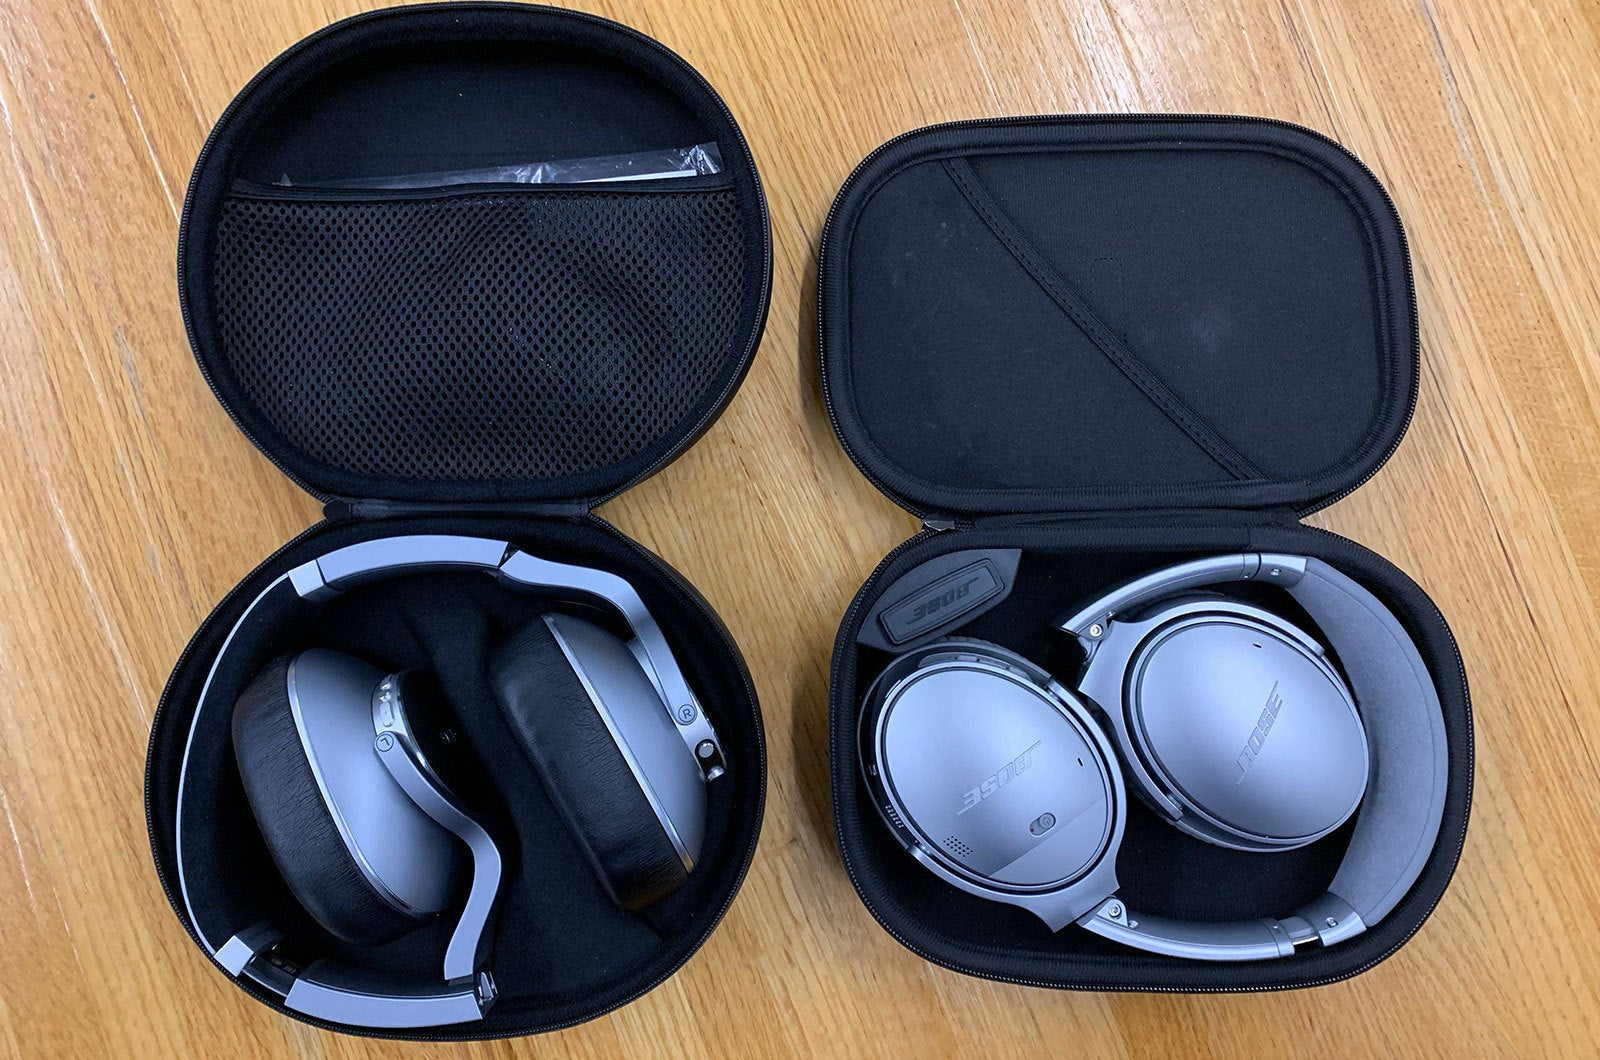 AKG N700NC Wireless headphone review: Finally, noise